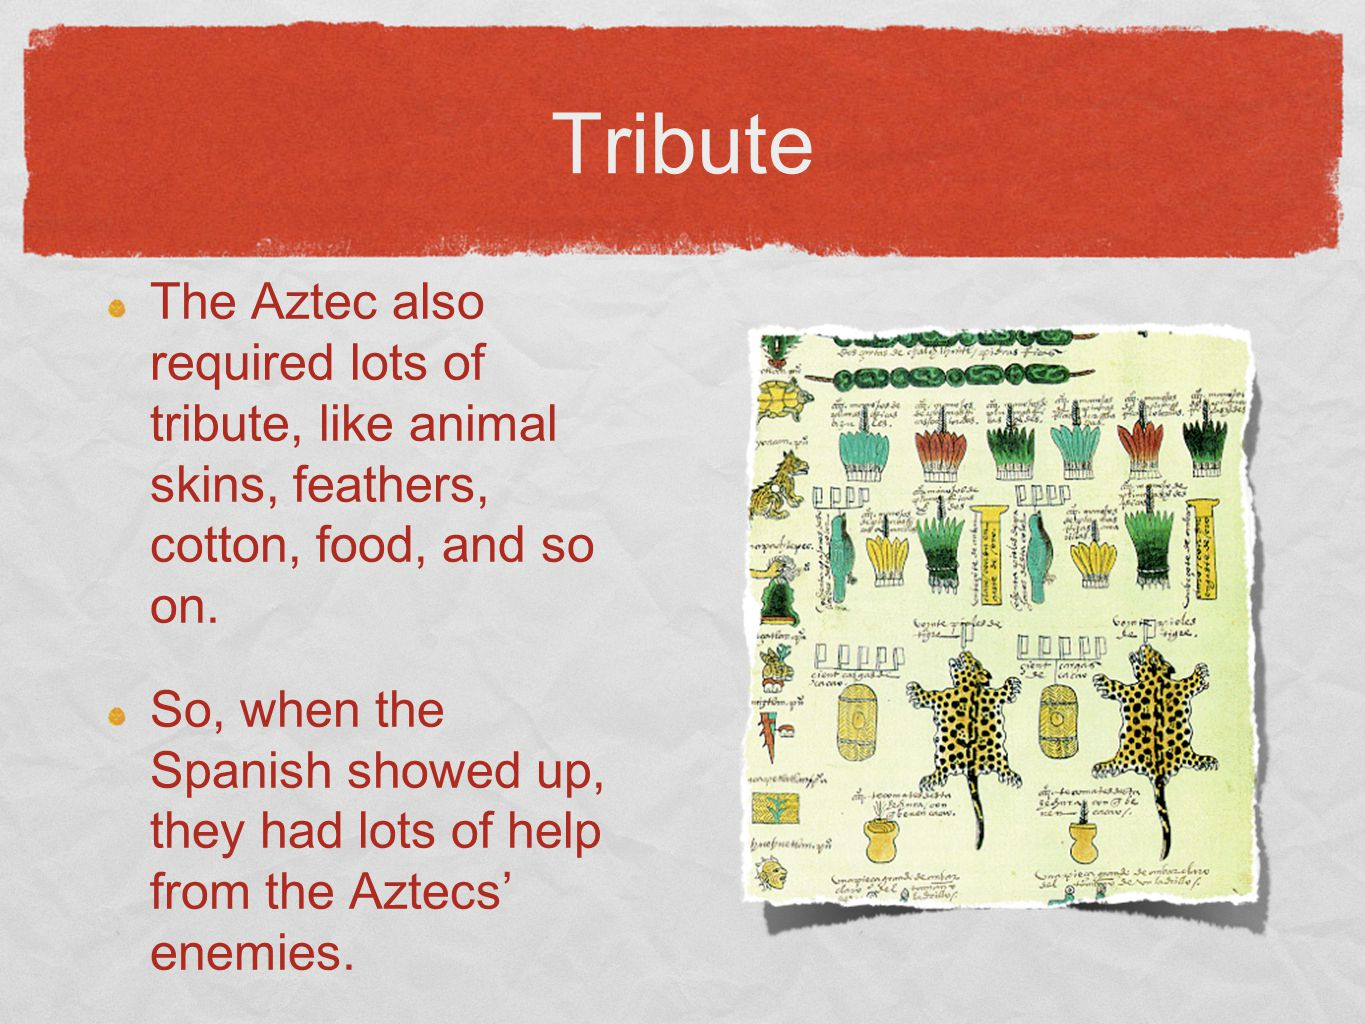 Tribute The Aztec also required lots of tribute, like animal skins, feathers, cotton, food, and so on. So, when the Spanish showed up, they had lots o